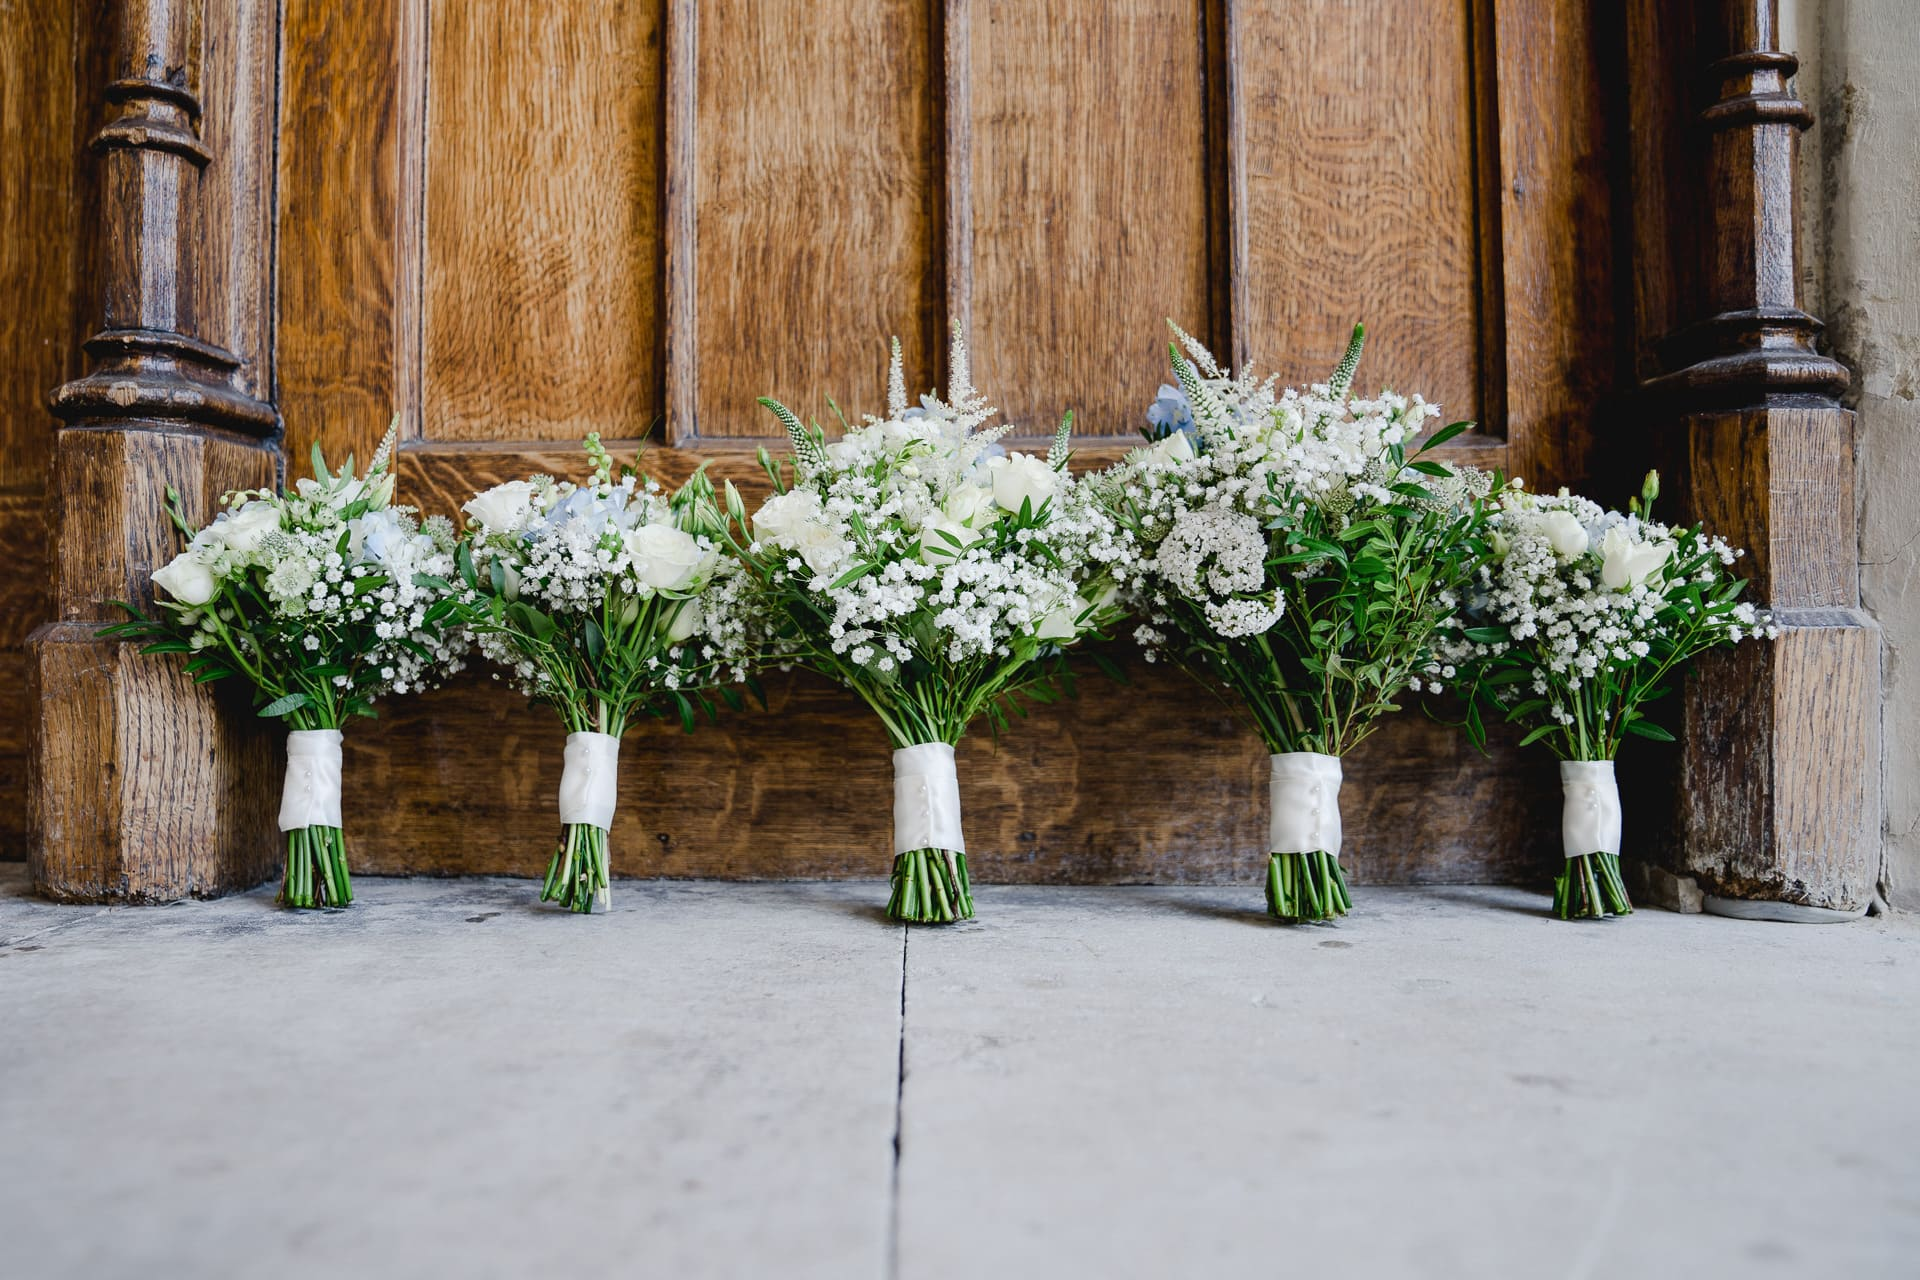 fine art wedding photography image of five bouquets of flowers in front of a wooden door